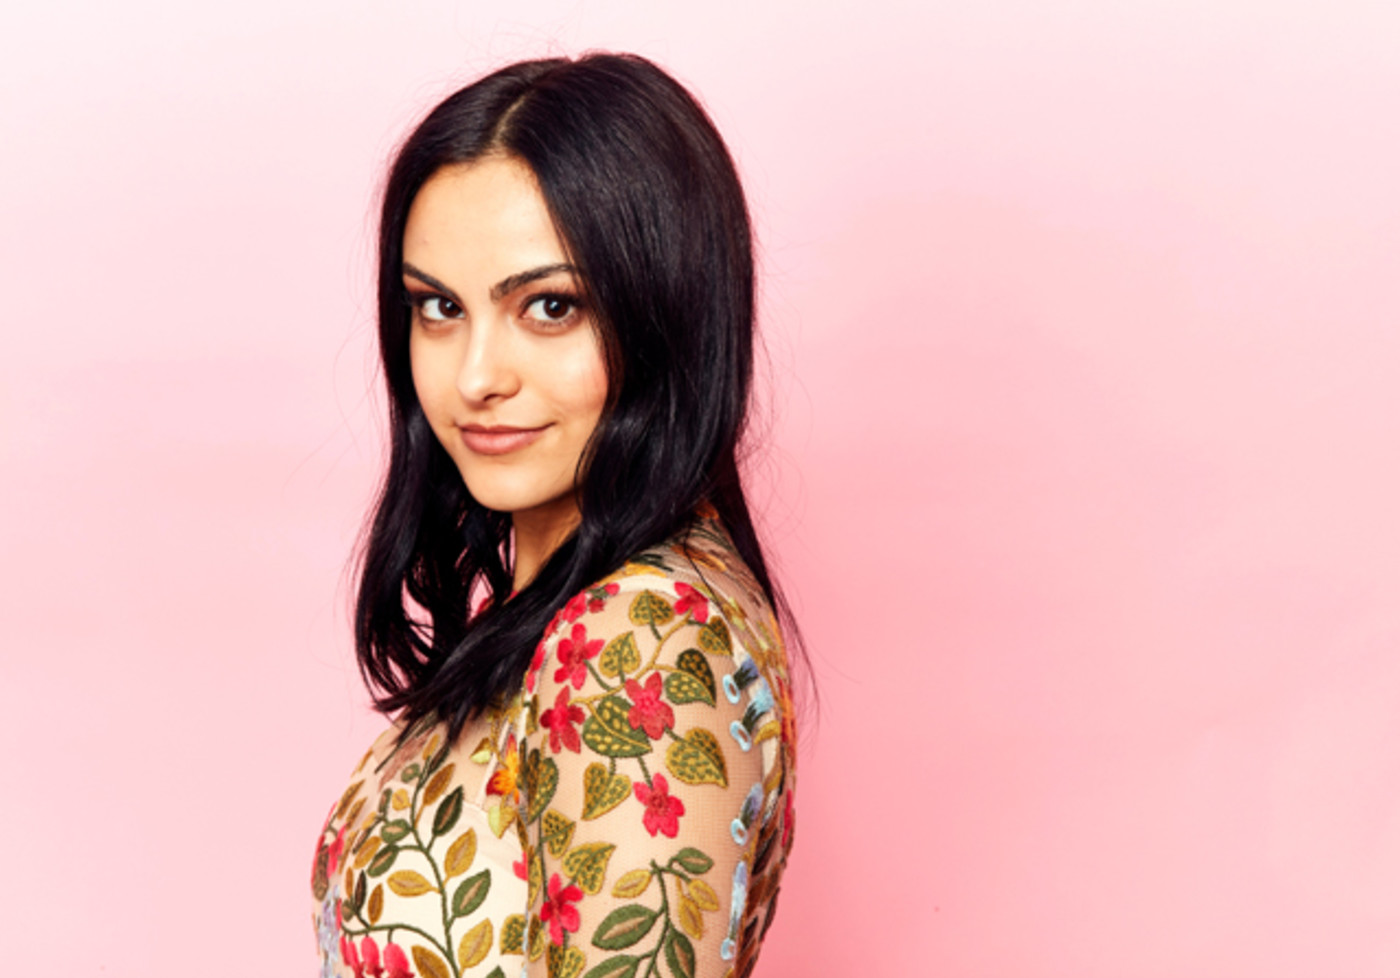 Camila Mendes from CW's 'Riverdale' poses for a portrait during Comic-Con 2017